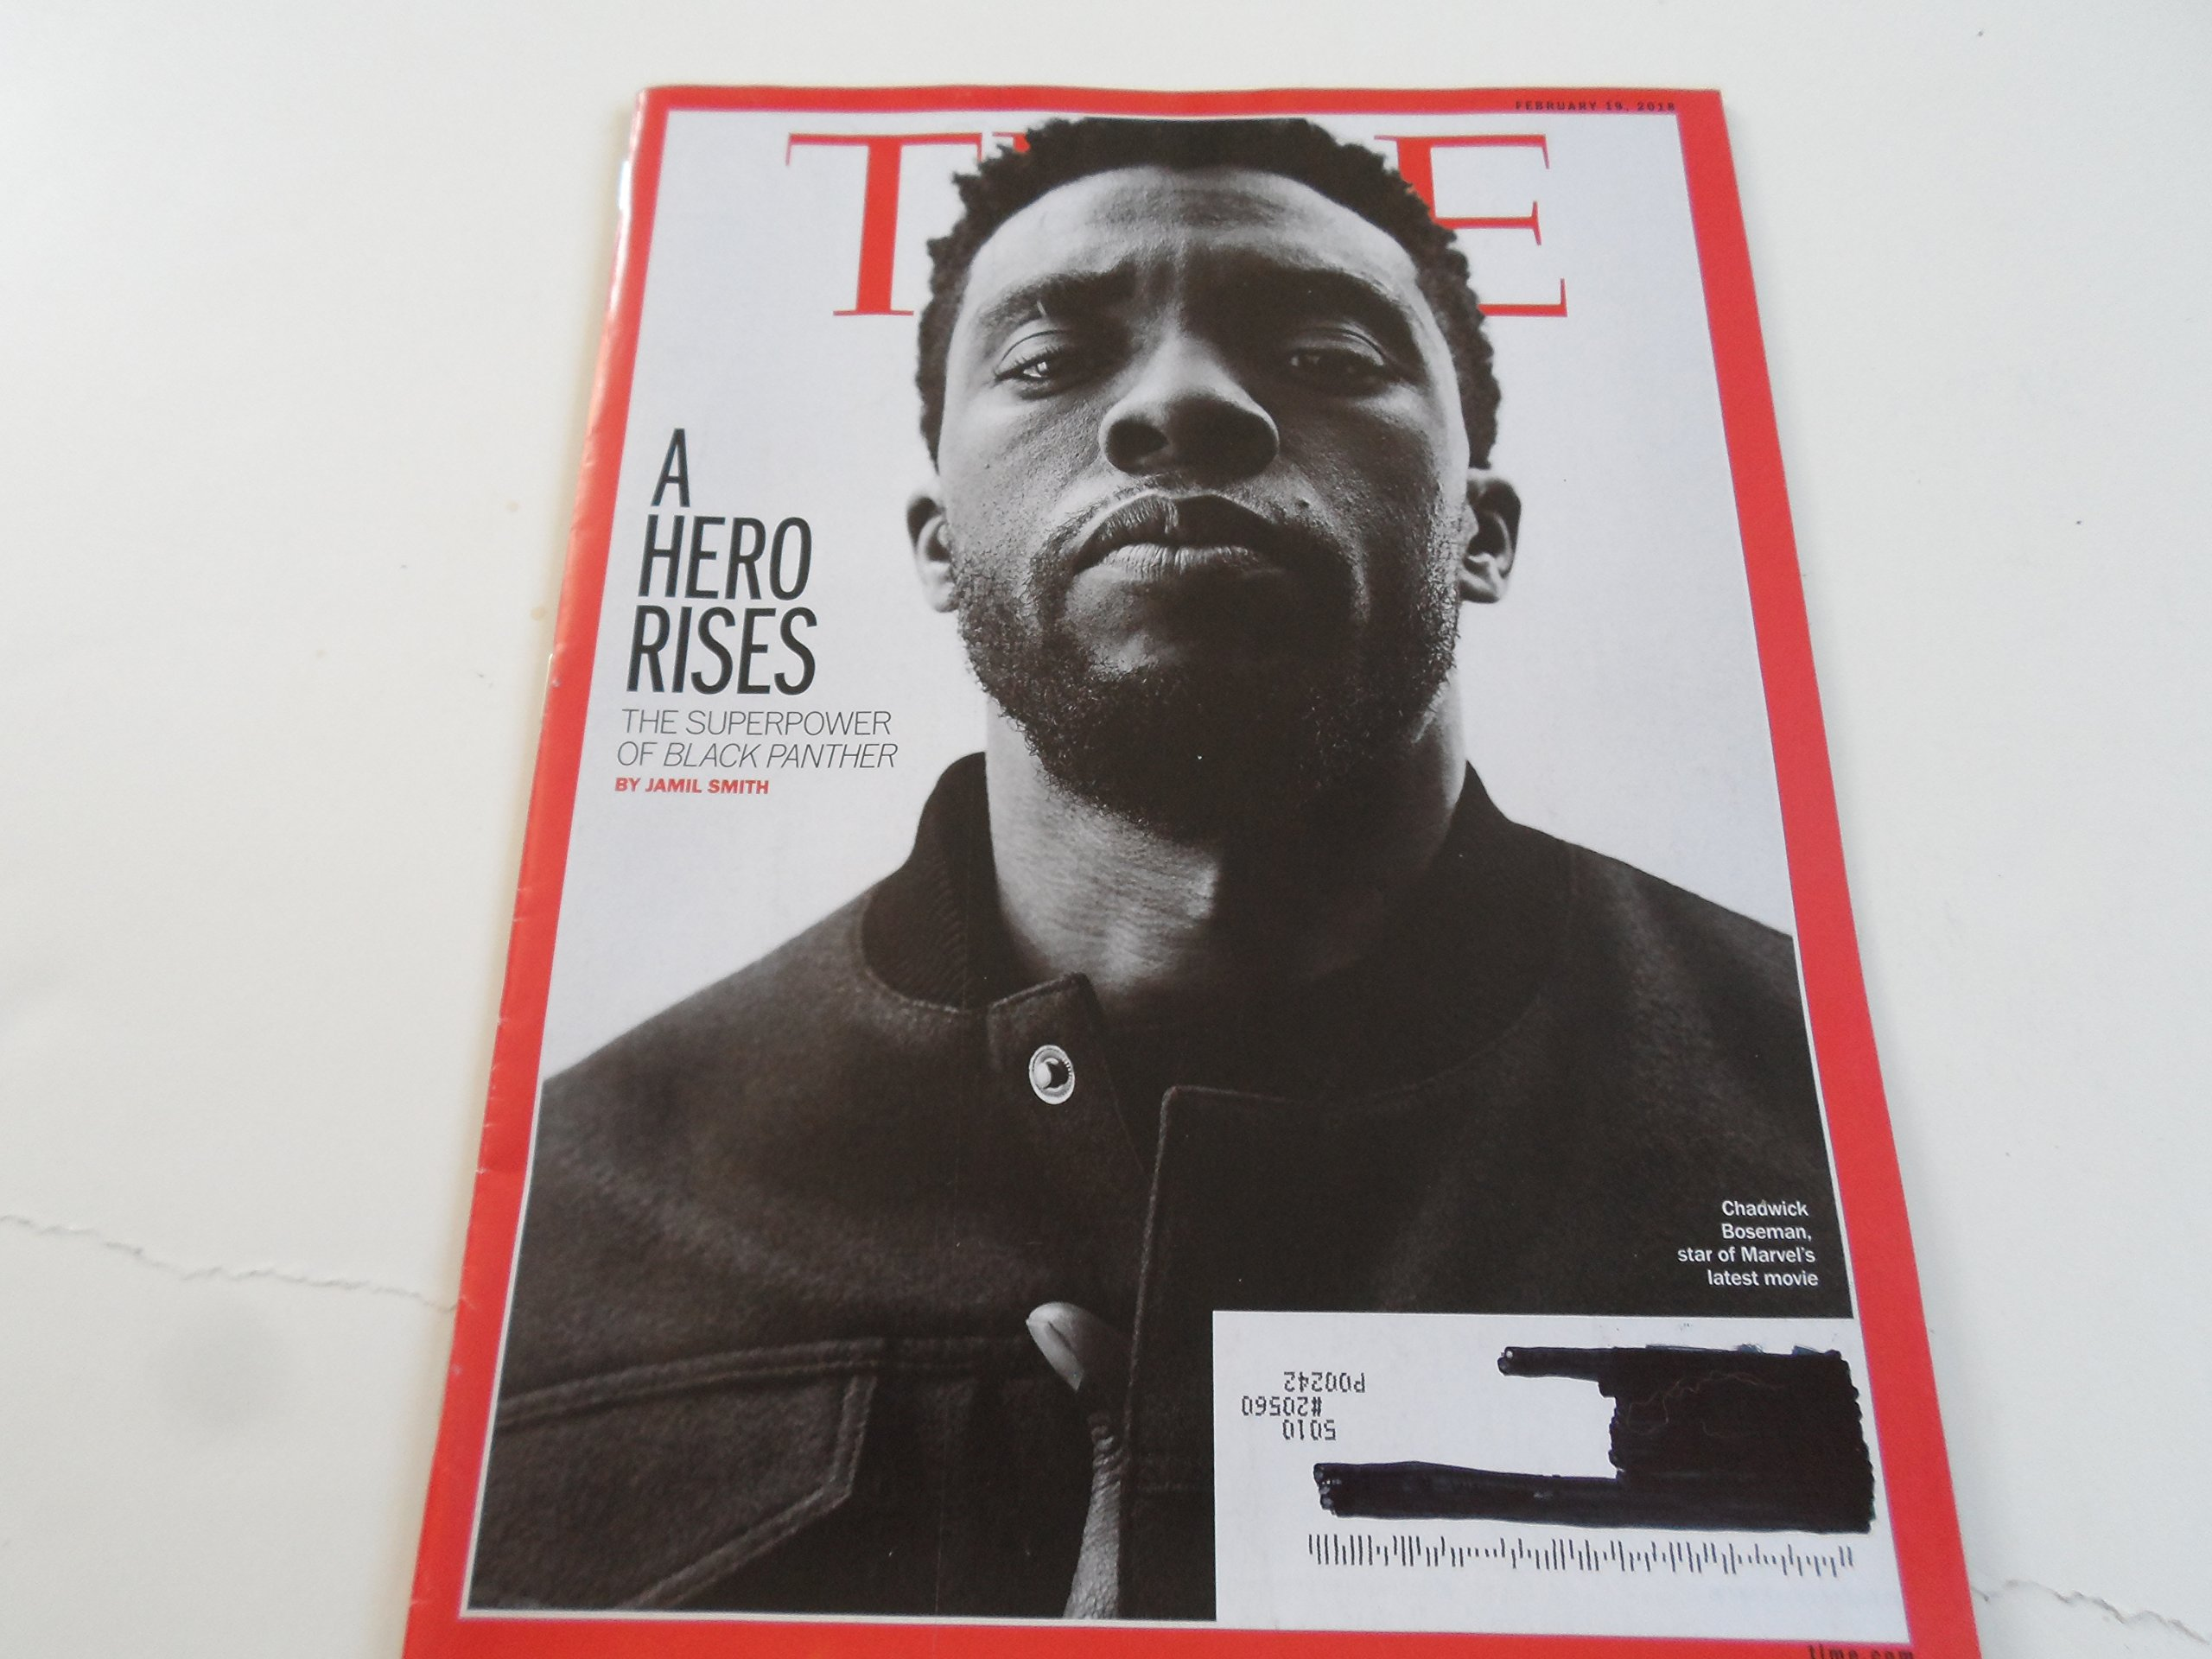 Time Magazine (February 19, 2018) Chadwick Boseman Cover Super Power of Black Panther ebook